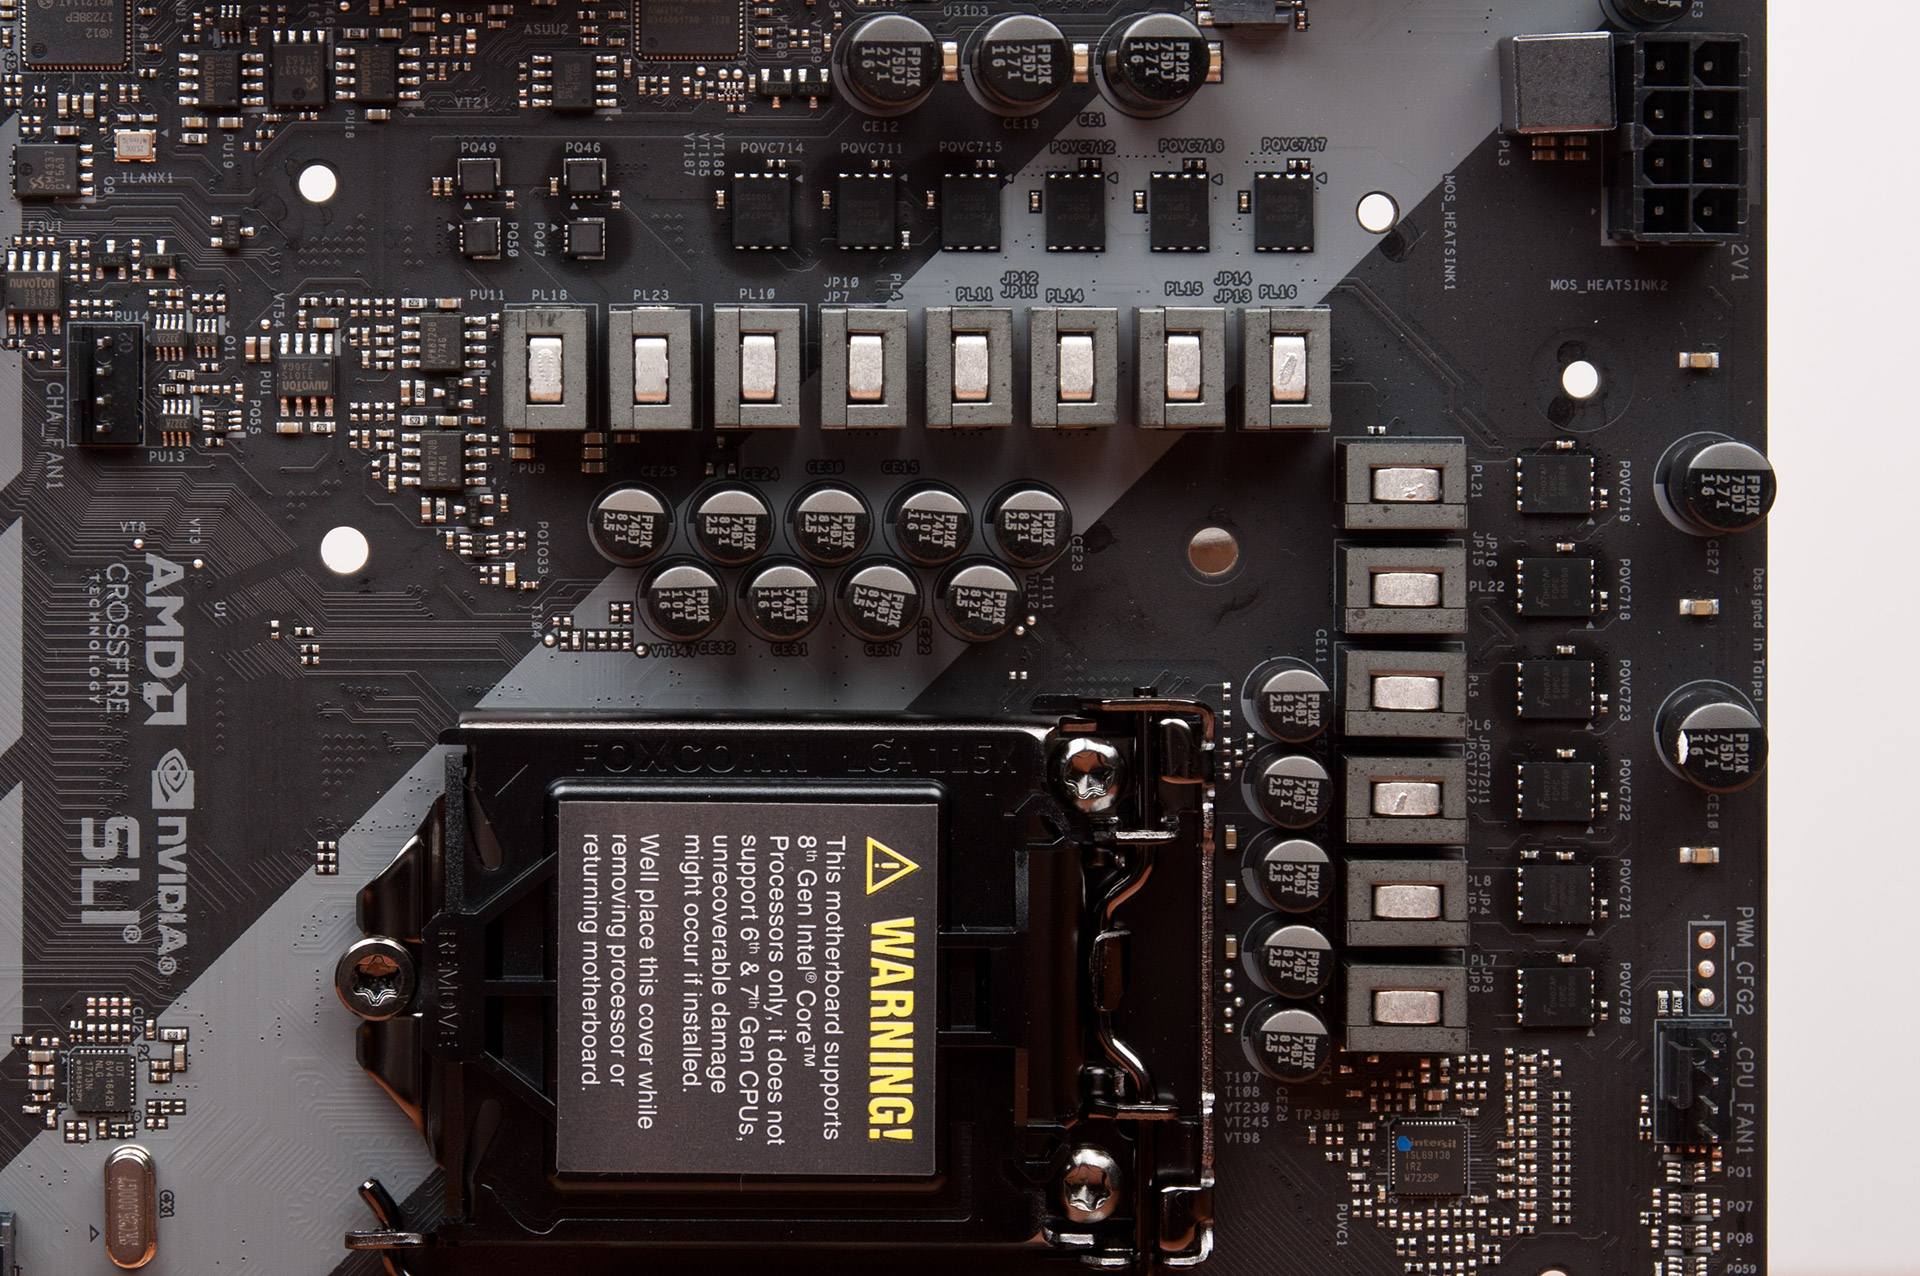 Z370 / Z390 VRM Discussion Thread - Page 122 - Overclock net - An